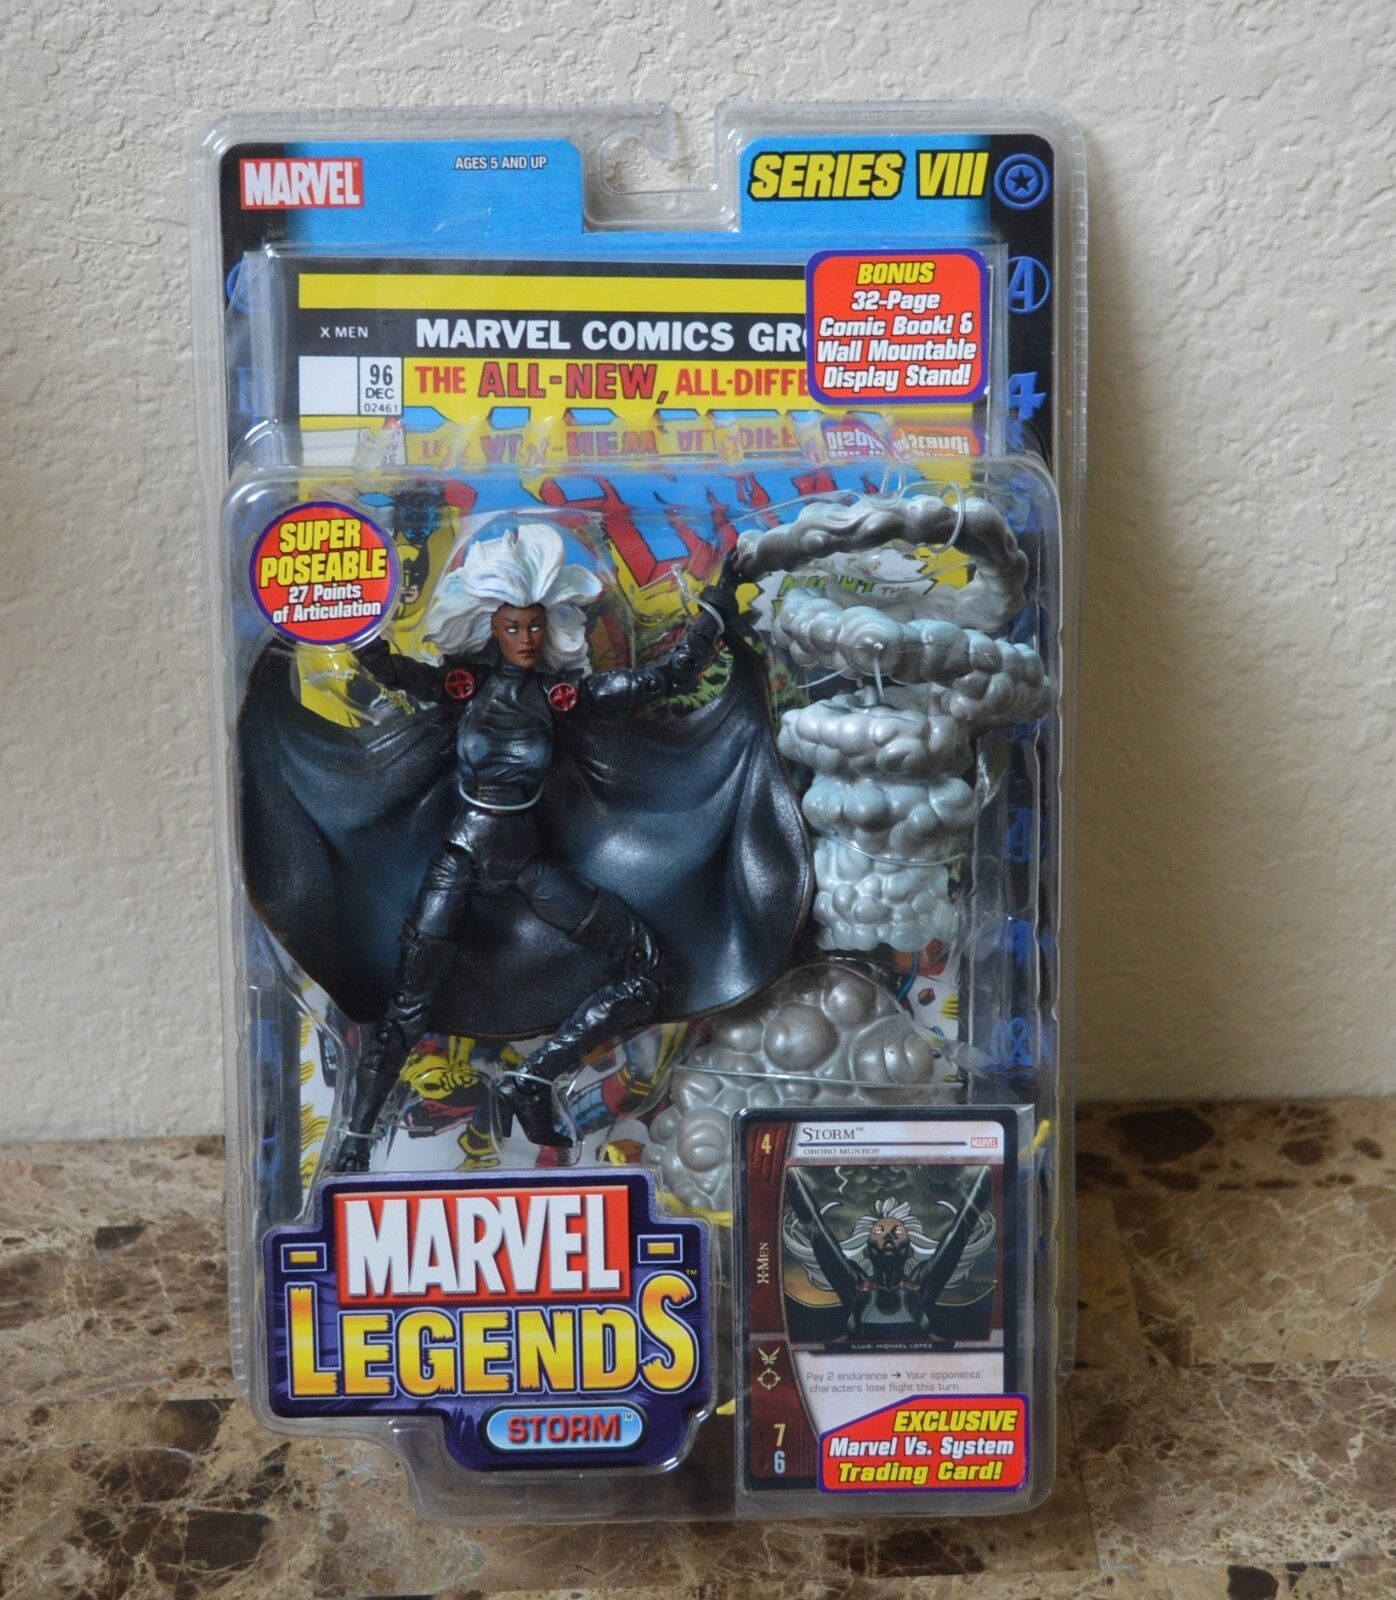 MARVEL LEGENDS STORM SERIES VIII 8 TOYBIZ NIB NEW X-MEN Action Figure